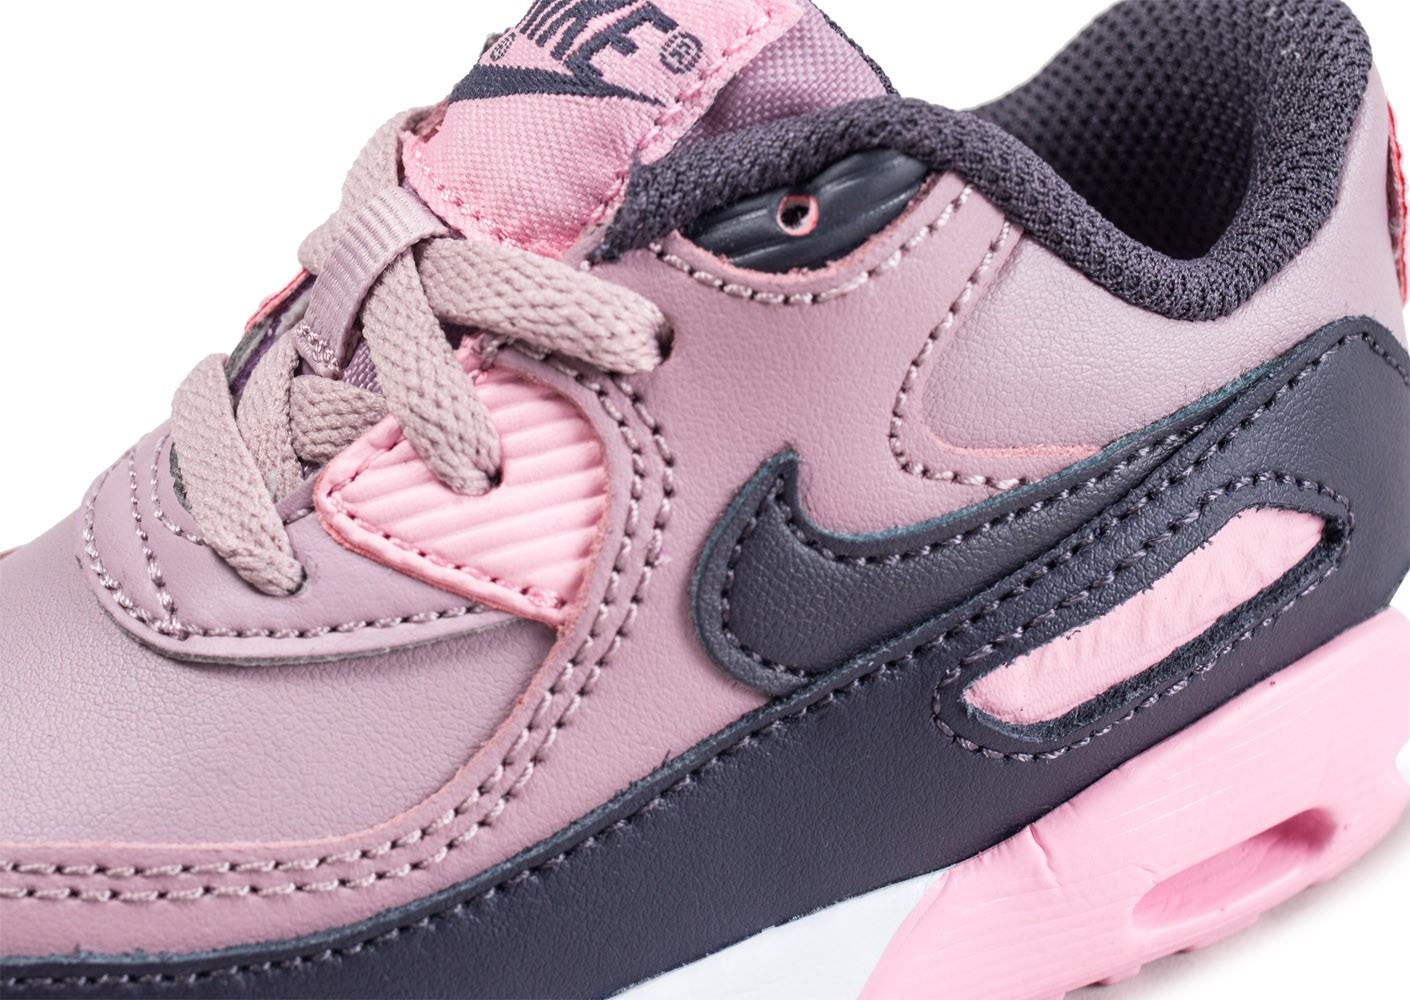 the latest 35777 9af48 ... Chaussures Nike Air Max 90 Leather rose bébé vue dessus